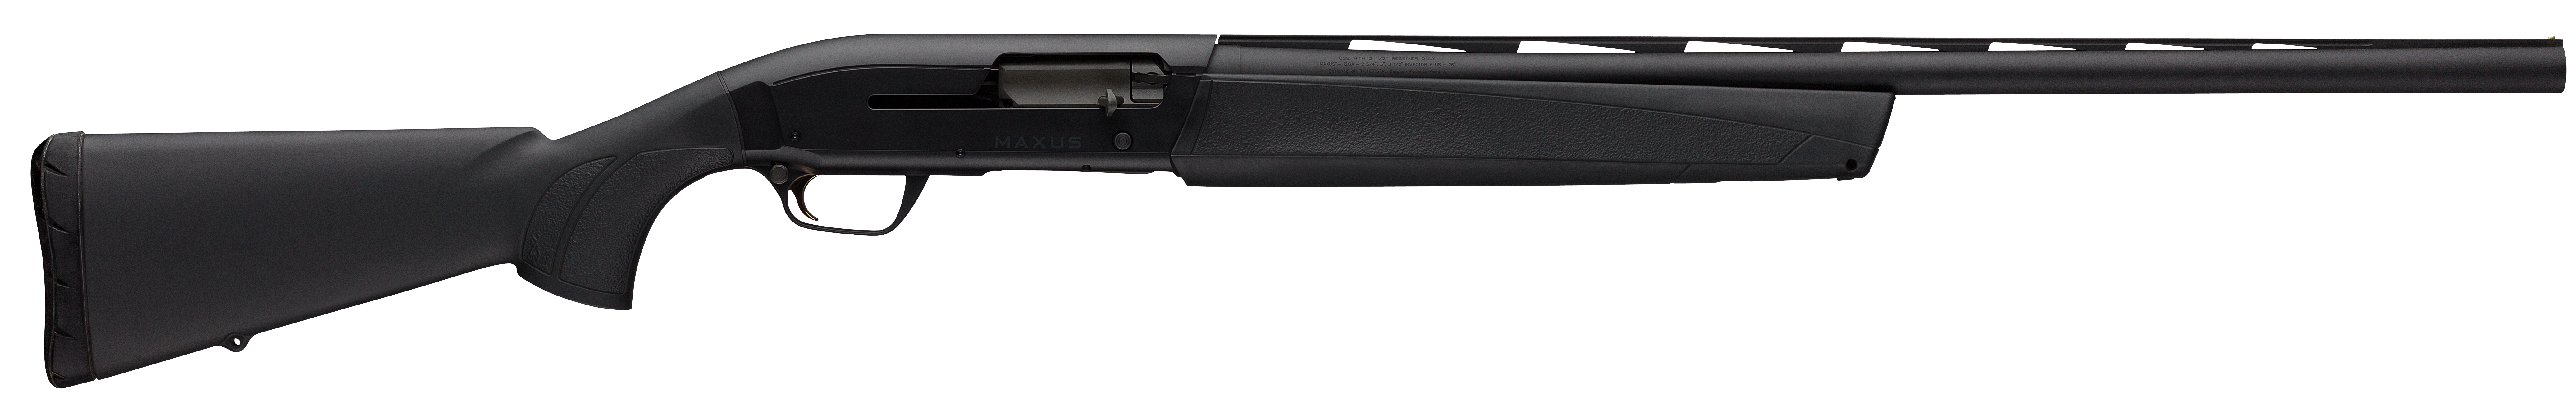 Browning Maxus Stalker Semi-Auto Shotgun 3'' 12 Gauge 28'' Black Aluminum Alloy/Blued Barrel - Synthetic - Black